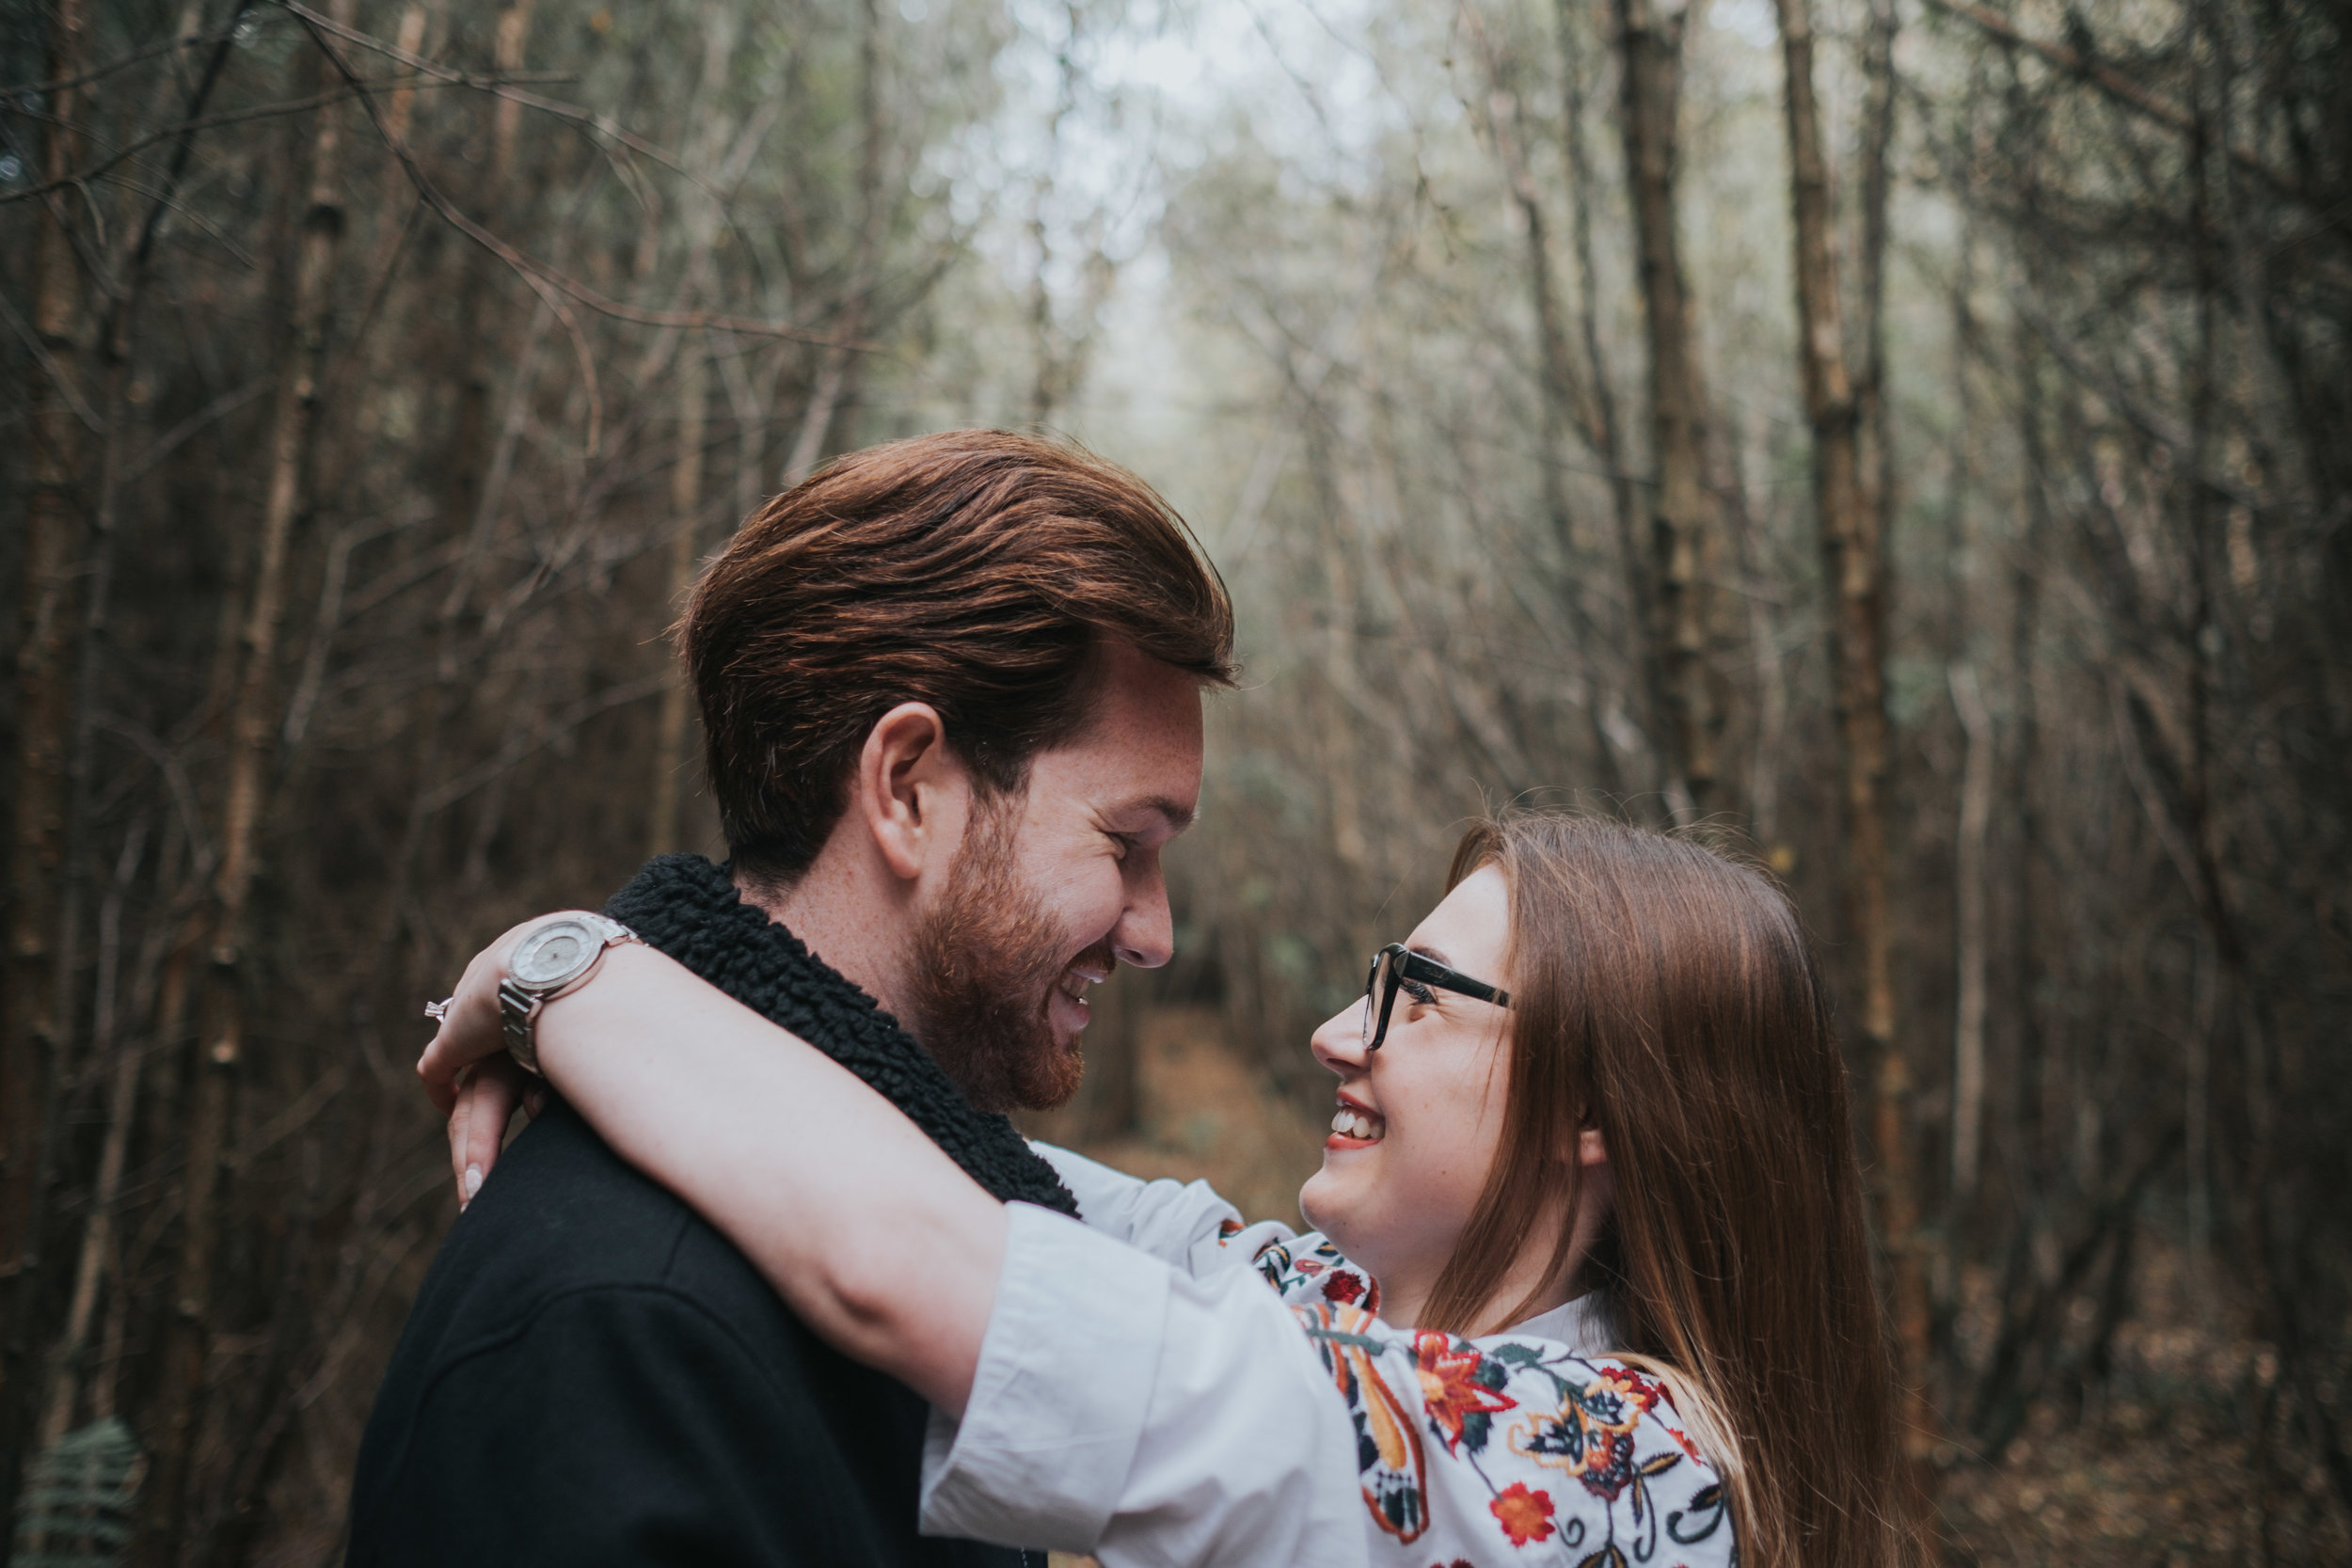 engagement photoshoot in delemere forest with the future bride and groom being happy and excited